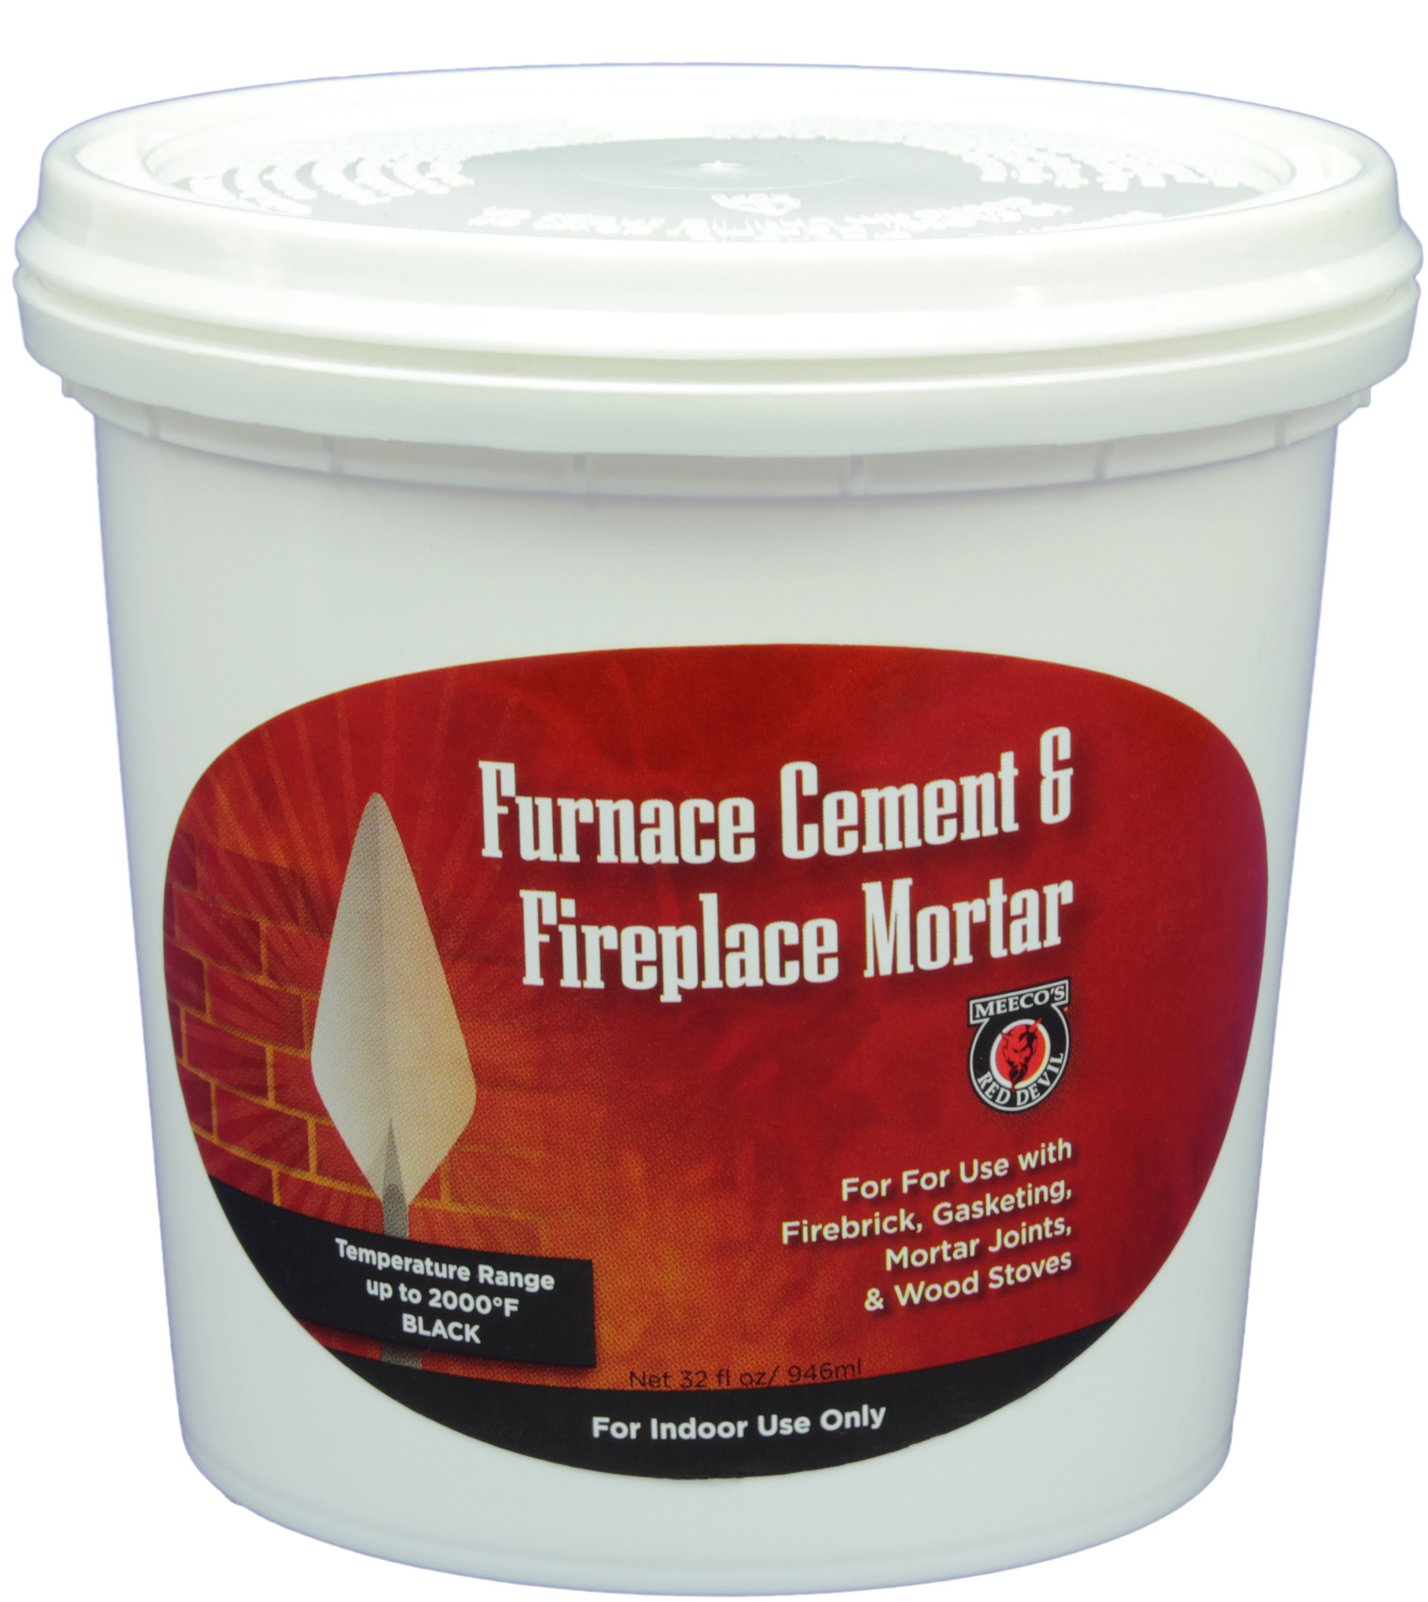 MEECO'S RED DEVIL 1334 Furnace Cement and Fireplace Mortar